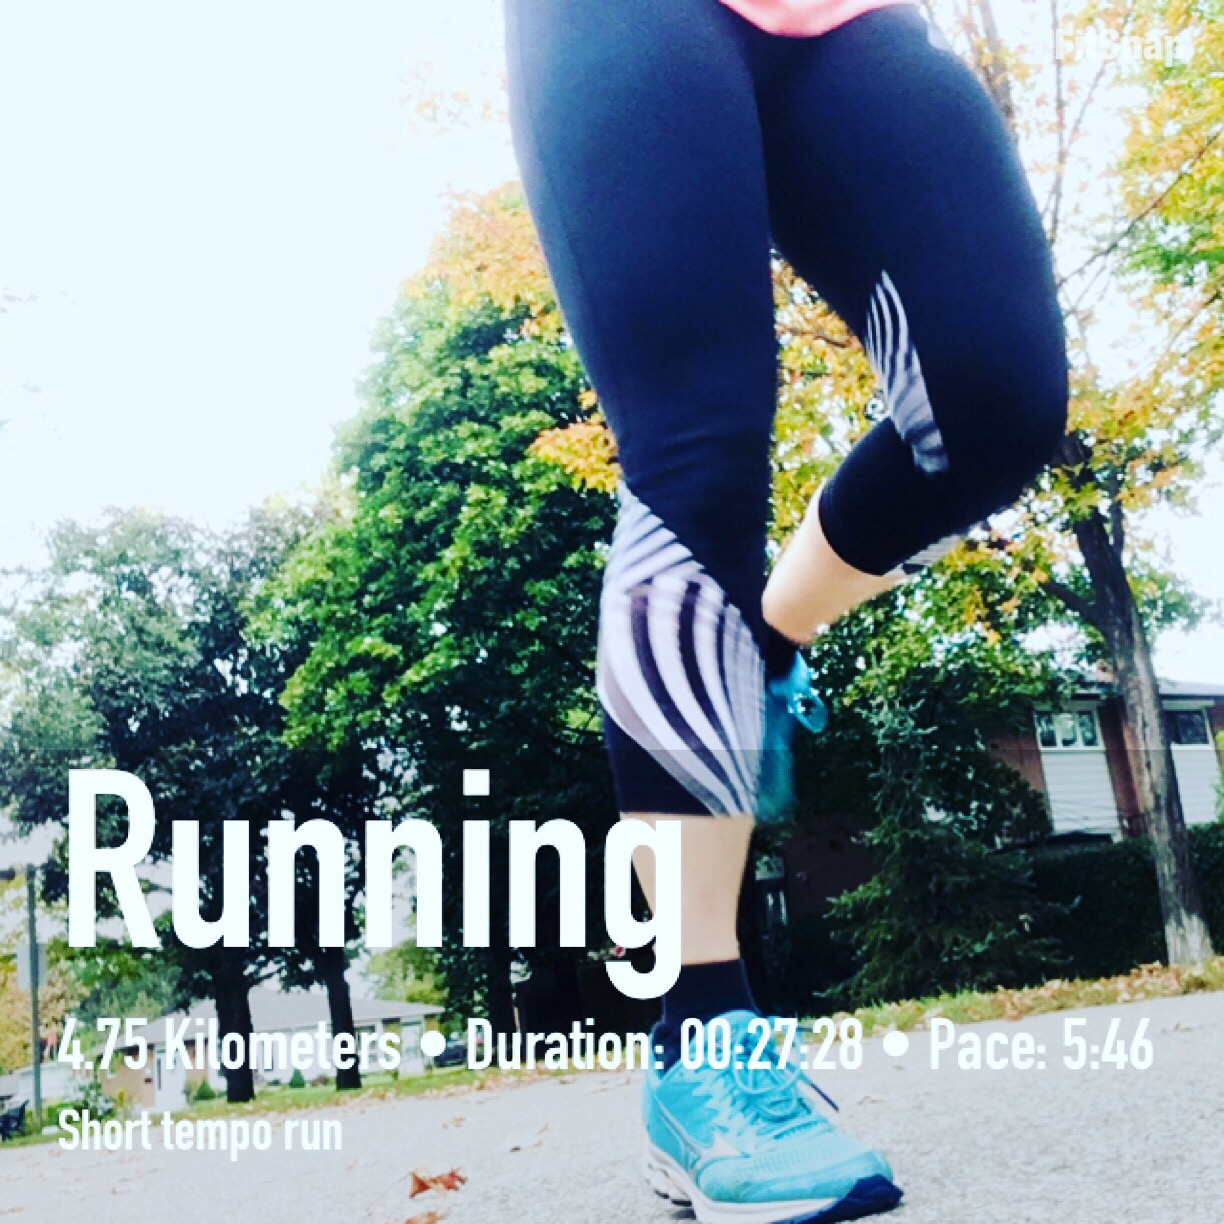 I Ran Four Times a Week for Three Months - Here's What Happened